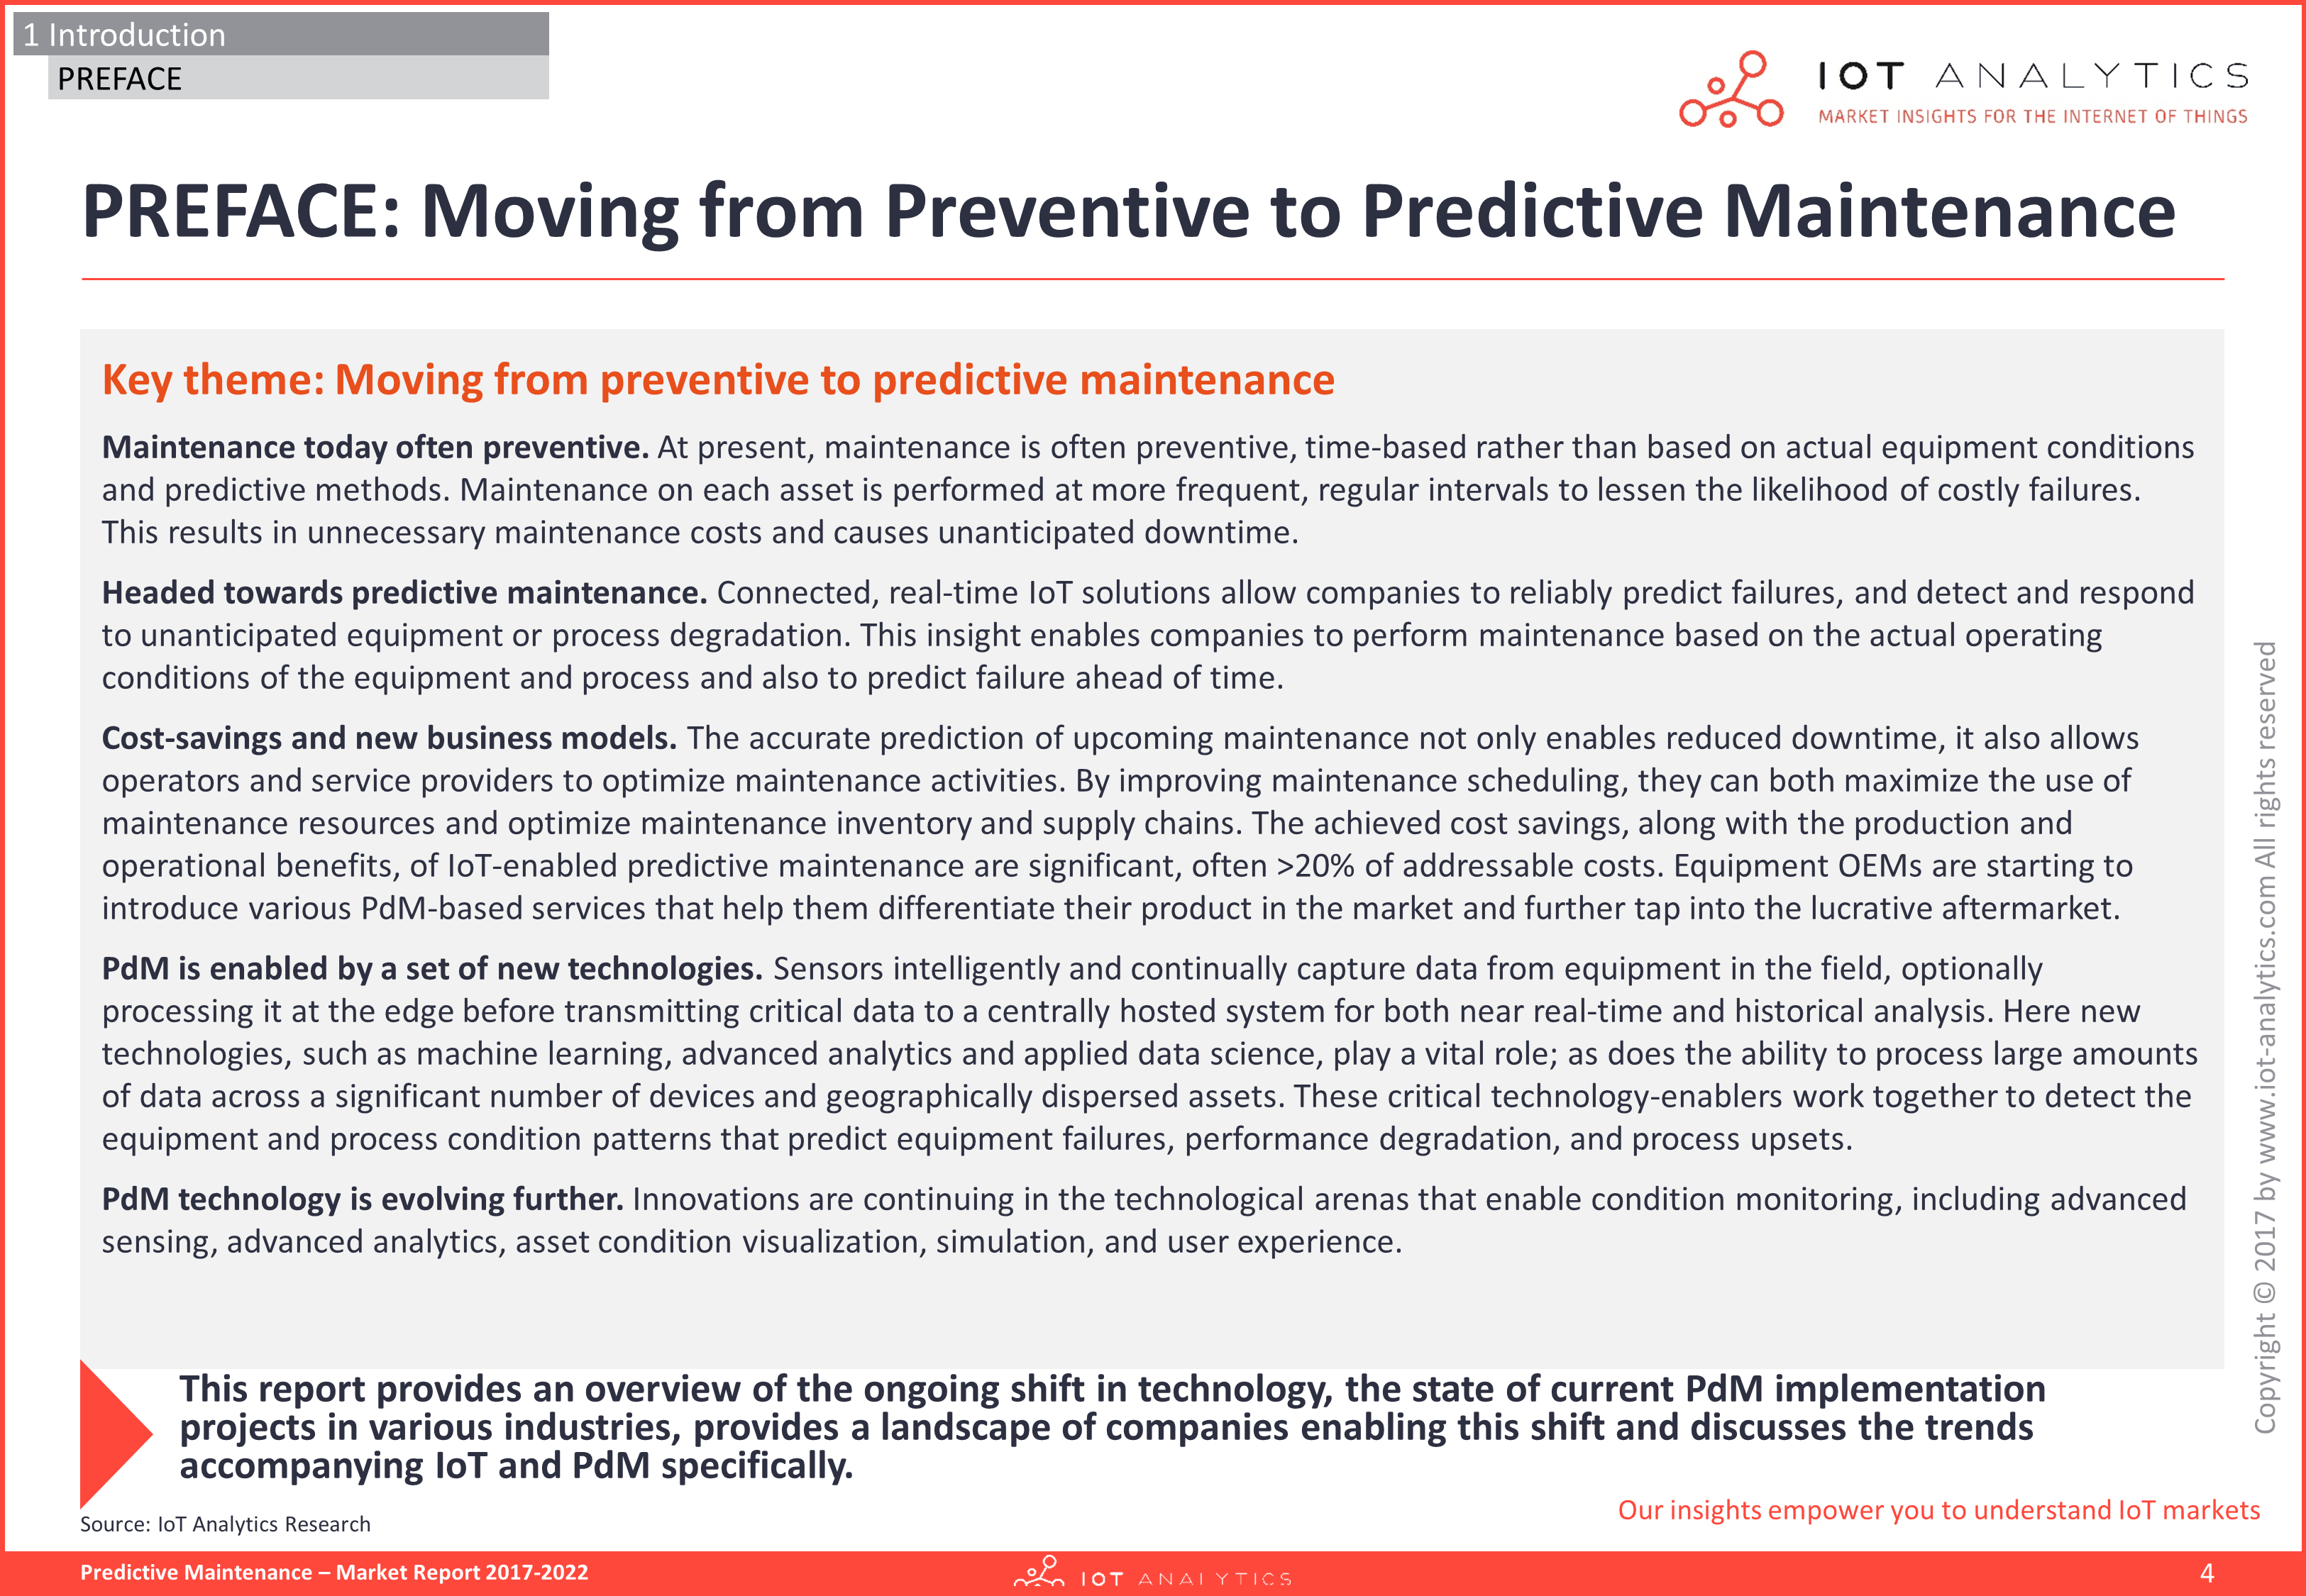 Predictive Maintenance Market Report - Page 10